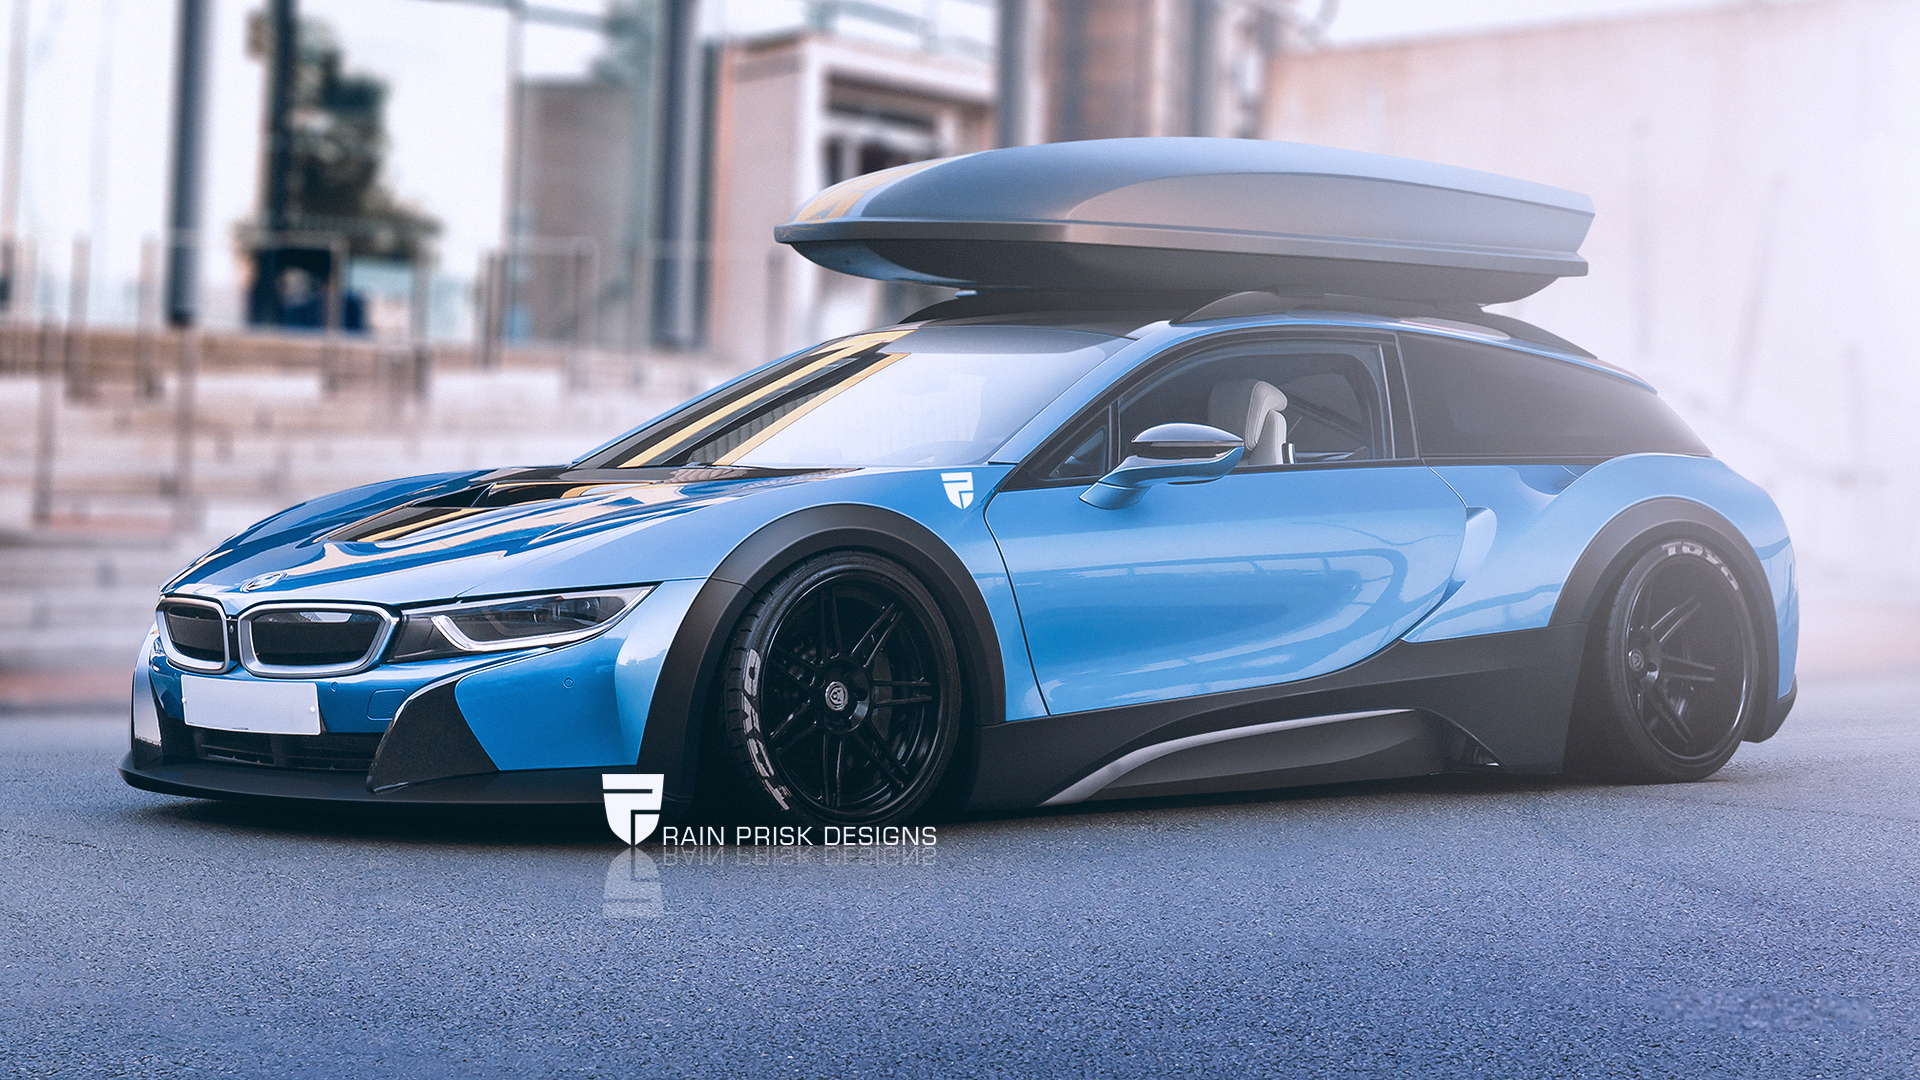 BMW i8 Shooting Brake by Rain Prisk